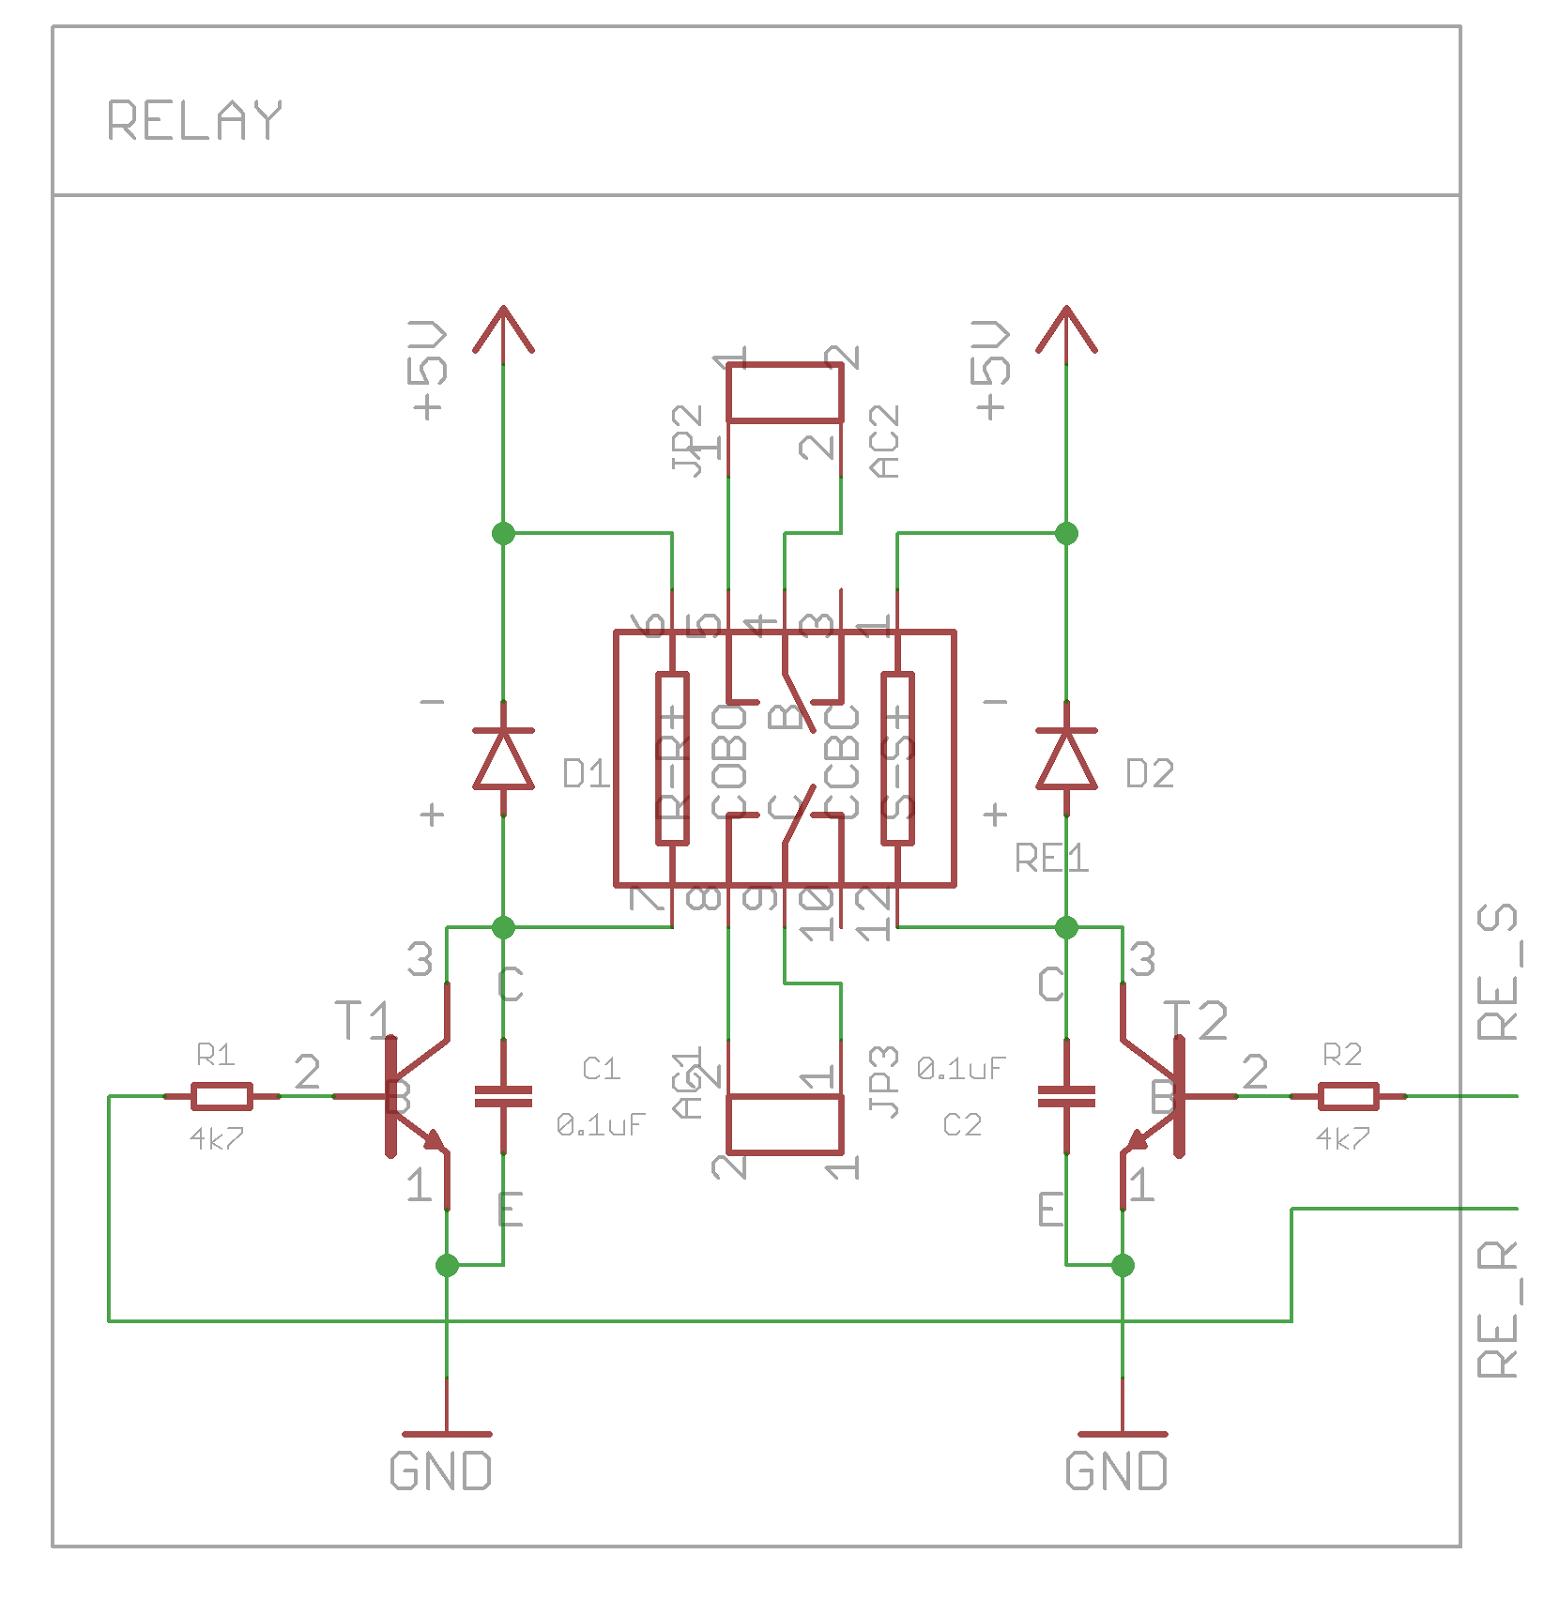 Starlight High Power LED Retrofit Part - Two coil latching relay